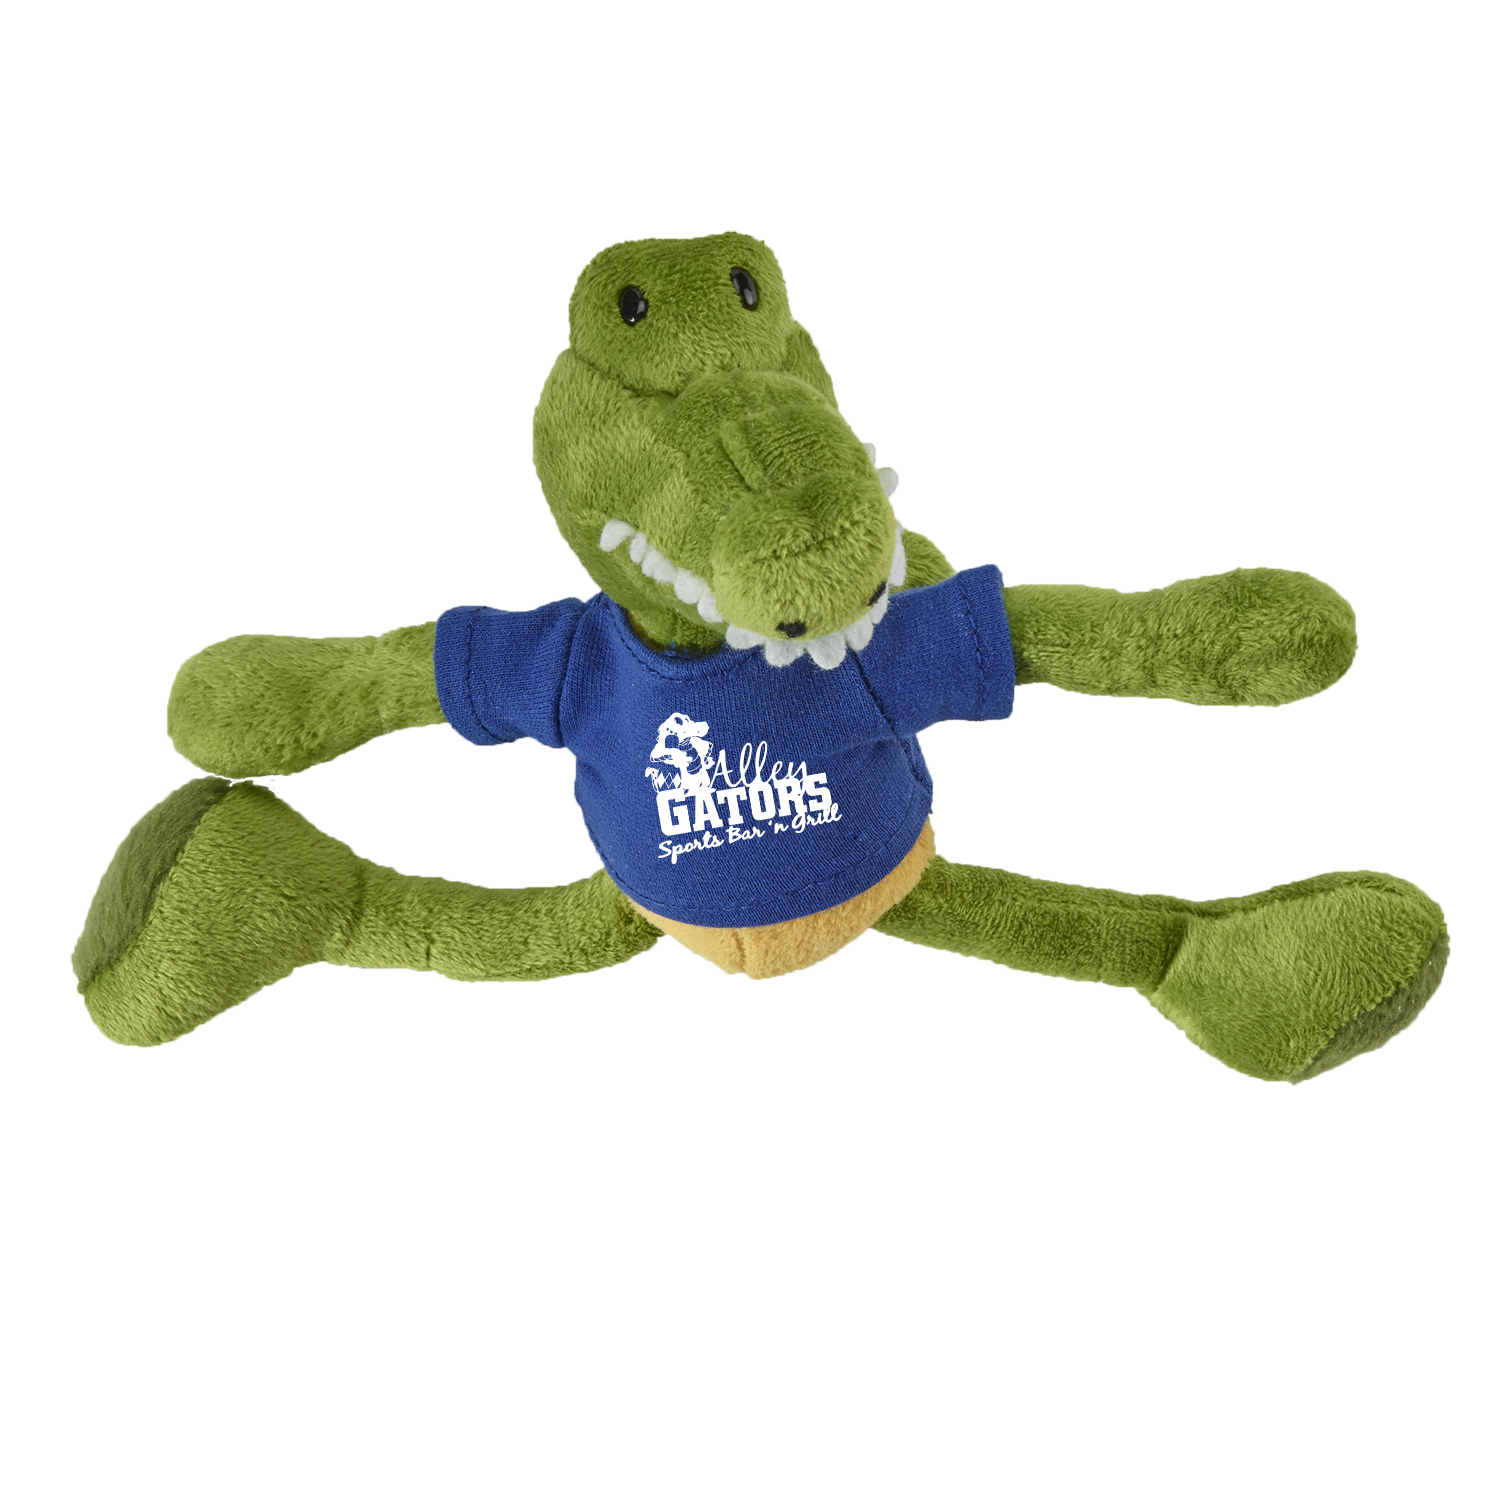 Pulley Pets Alligator